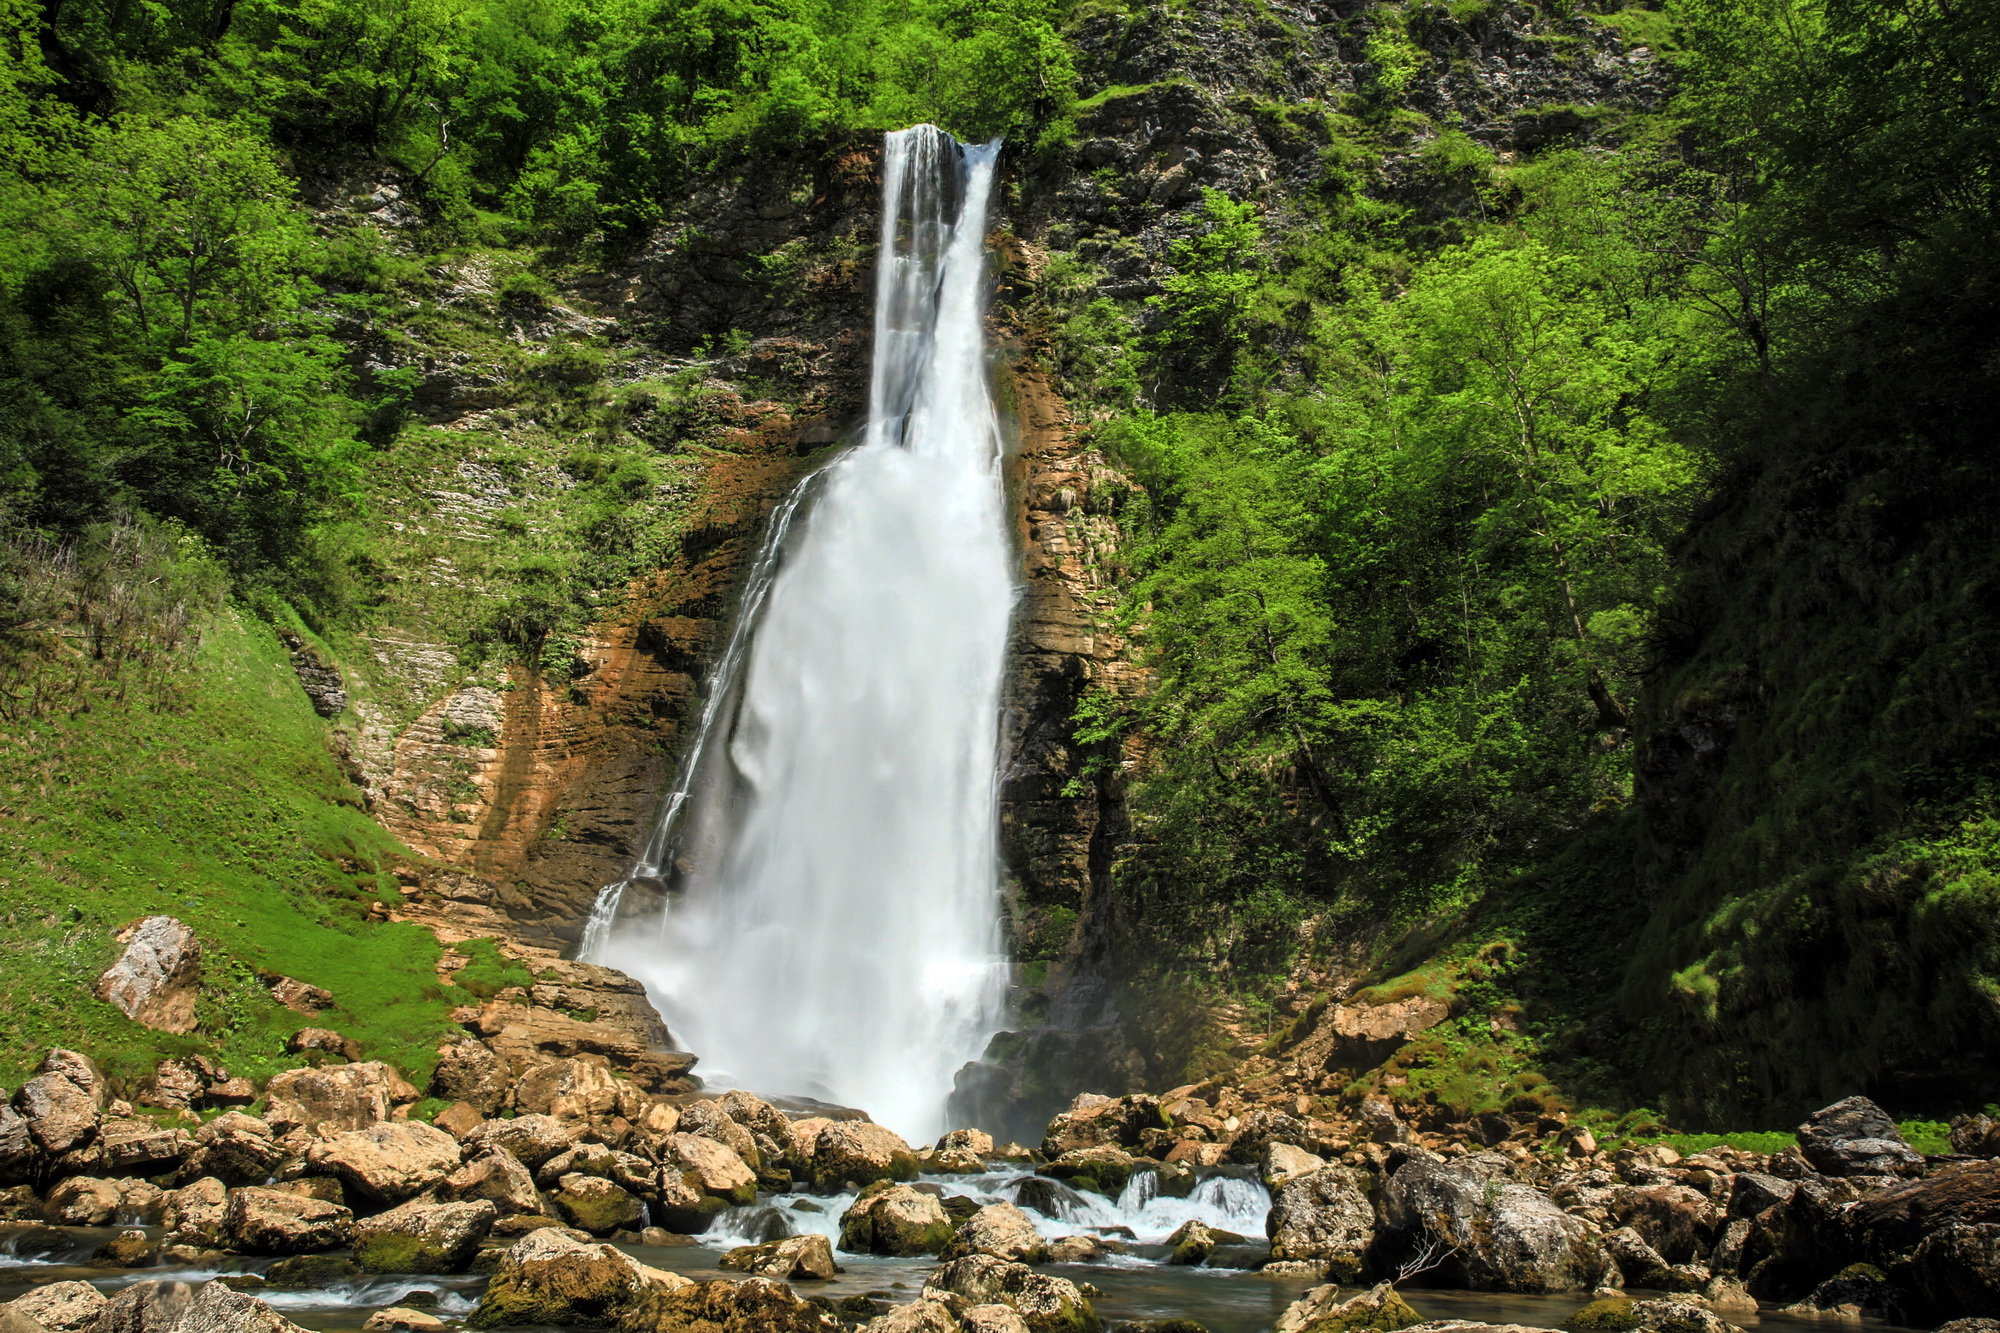 Oniore Waterfall and Toba First Cave Natural Monuments